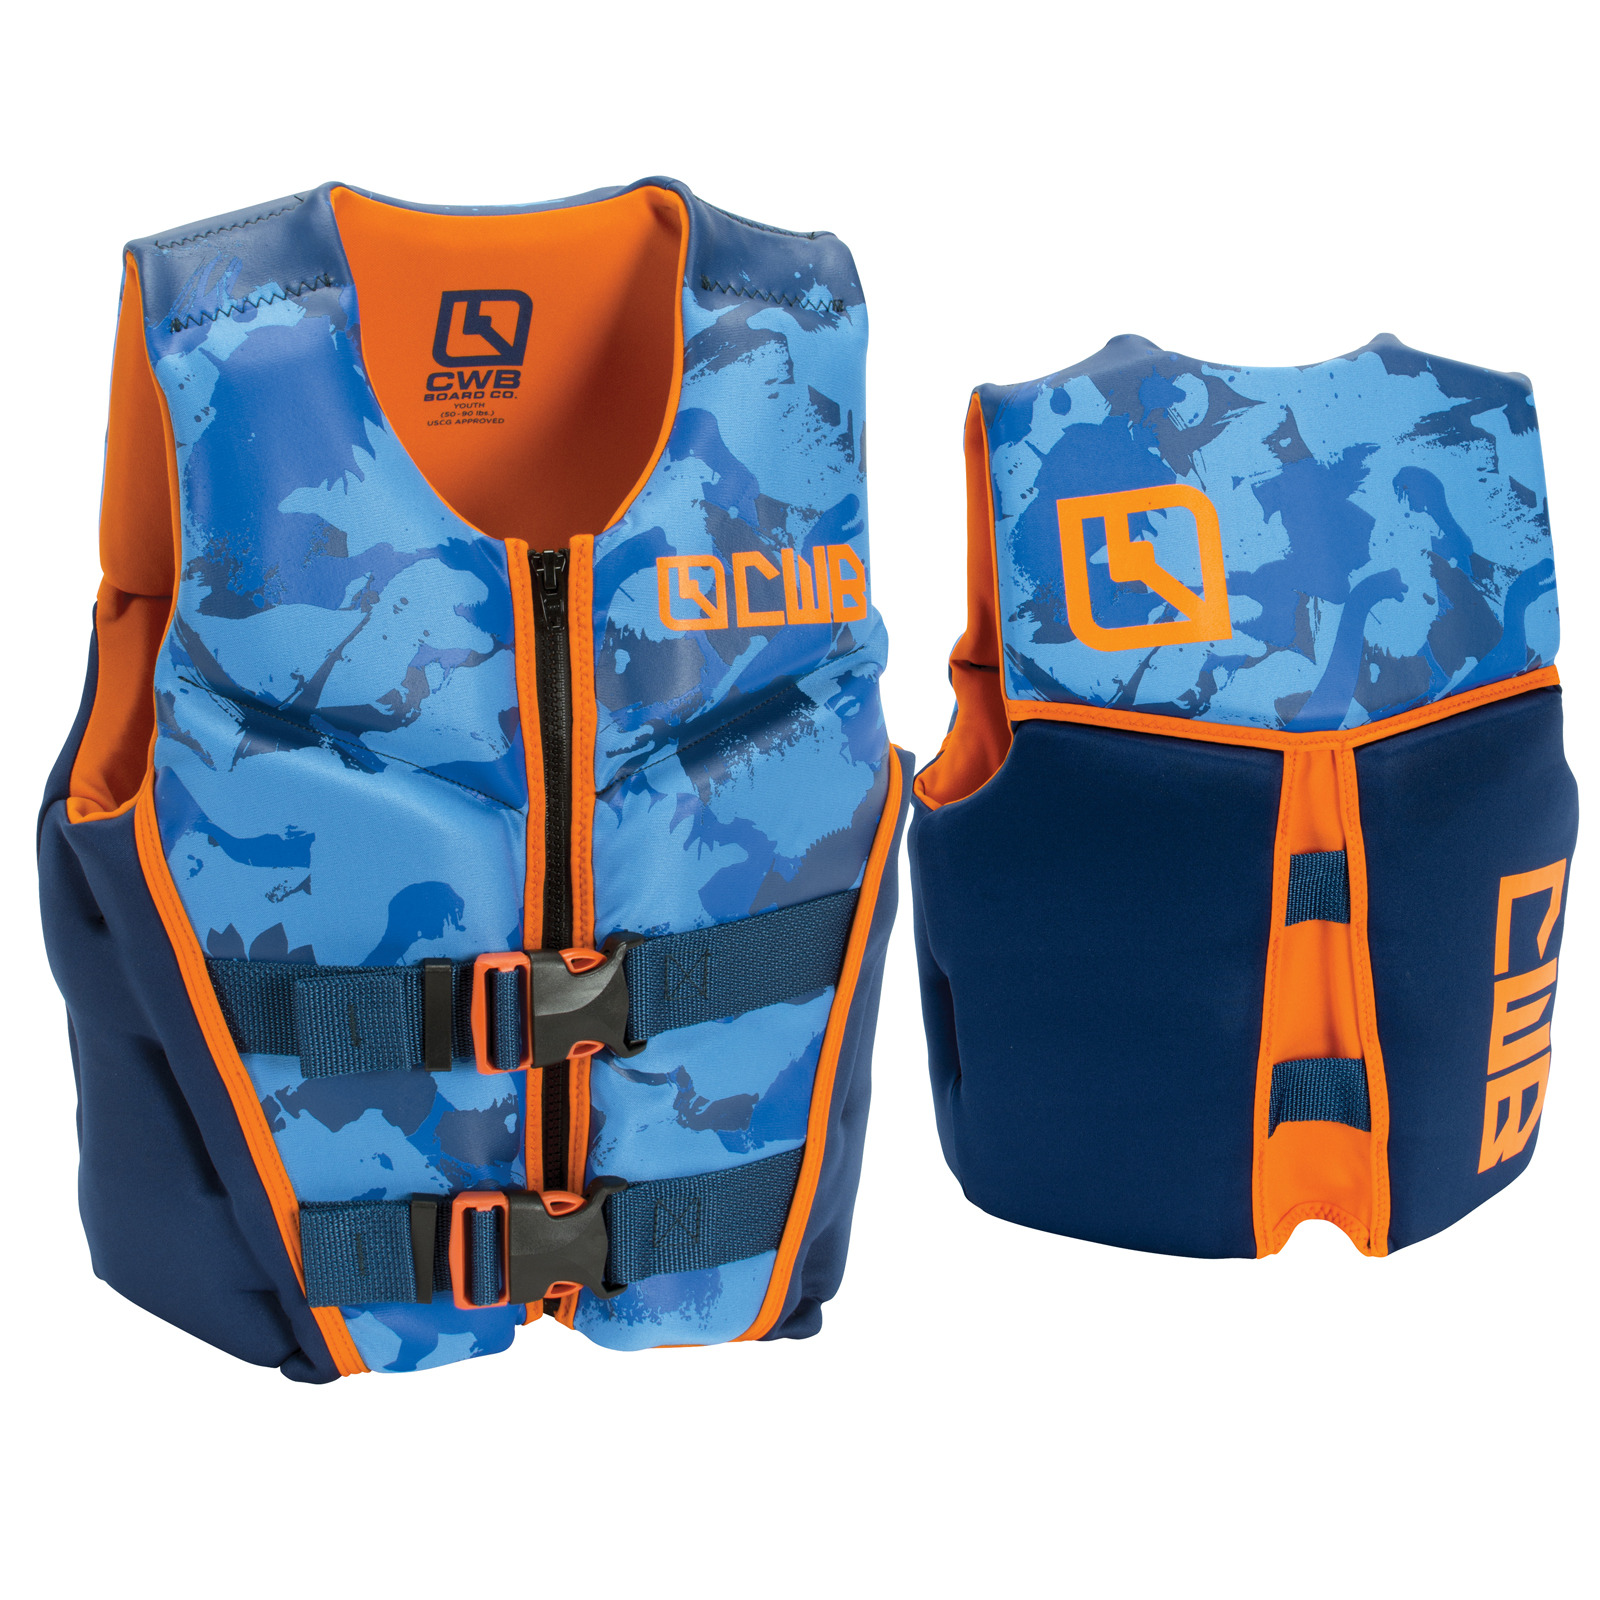 BOY'S YOUTH NEO VEST CWB 2017